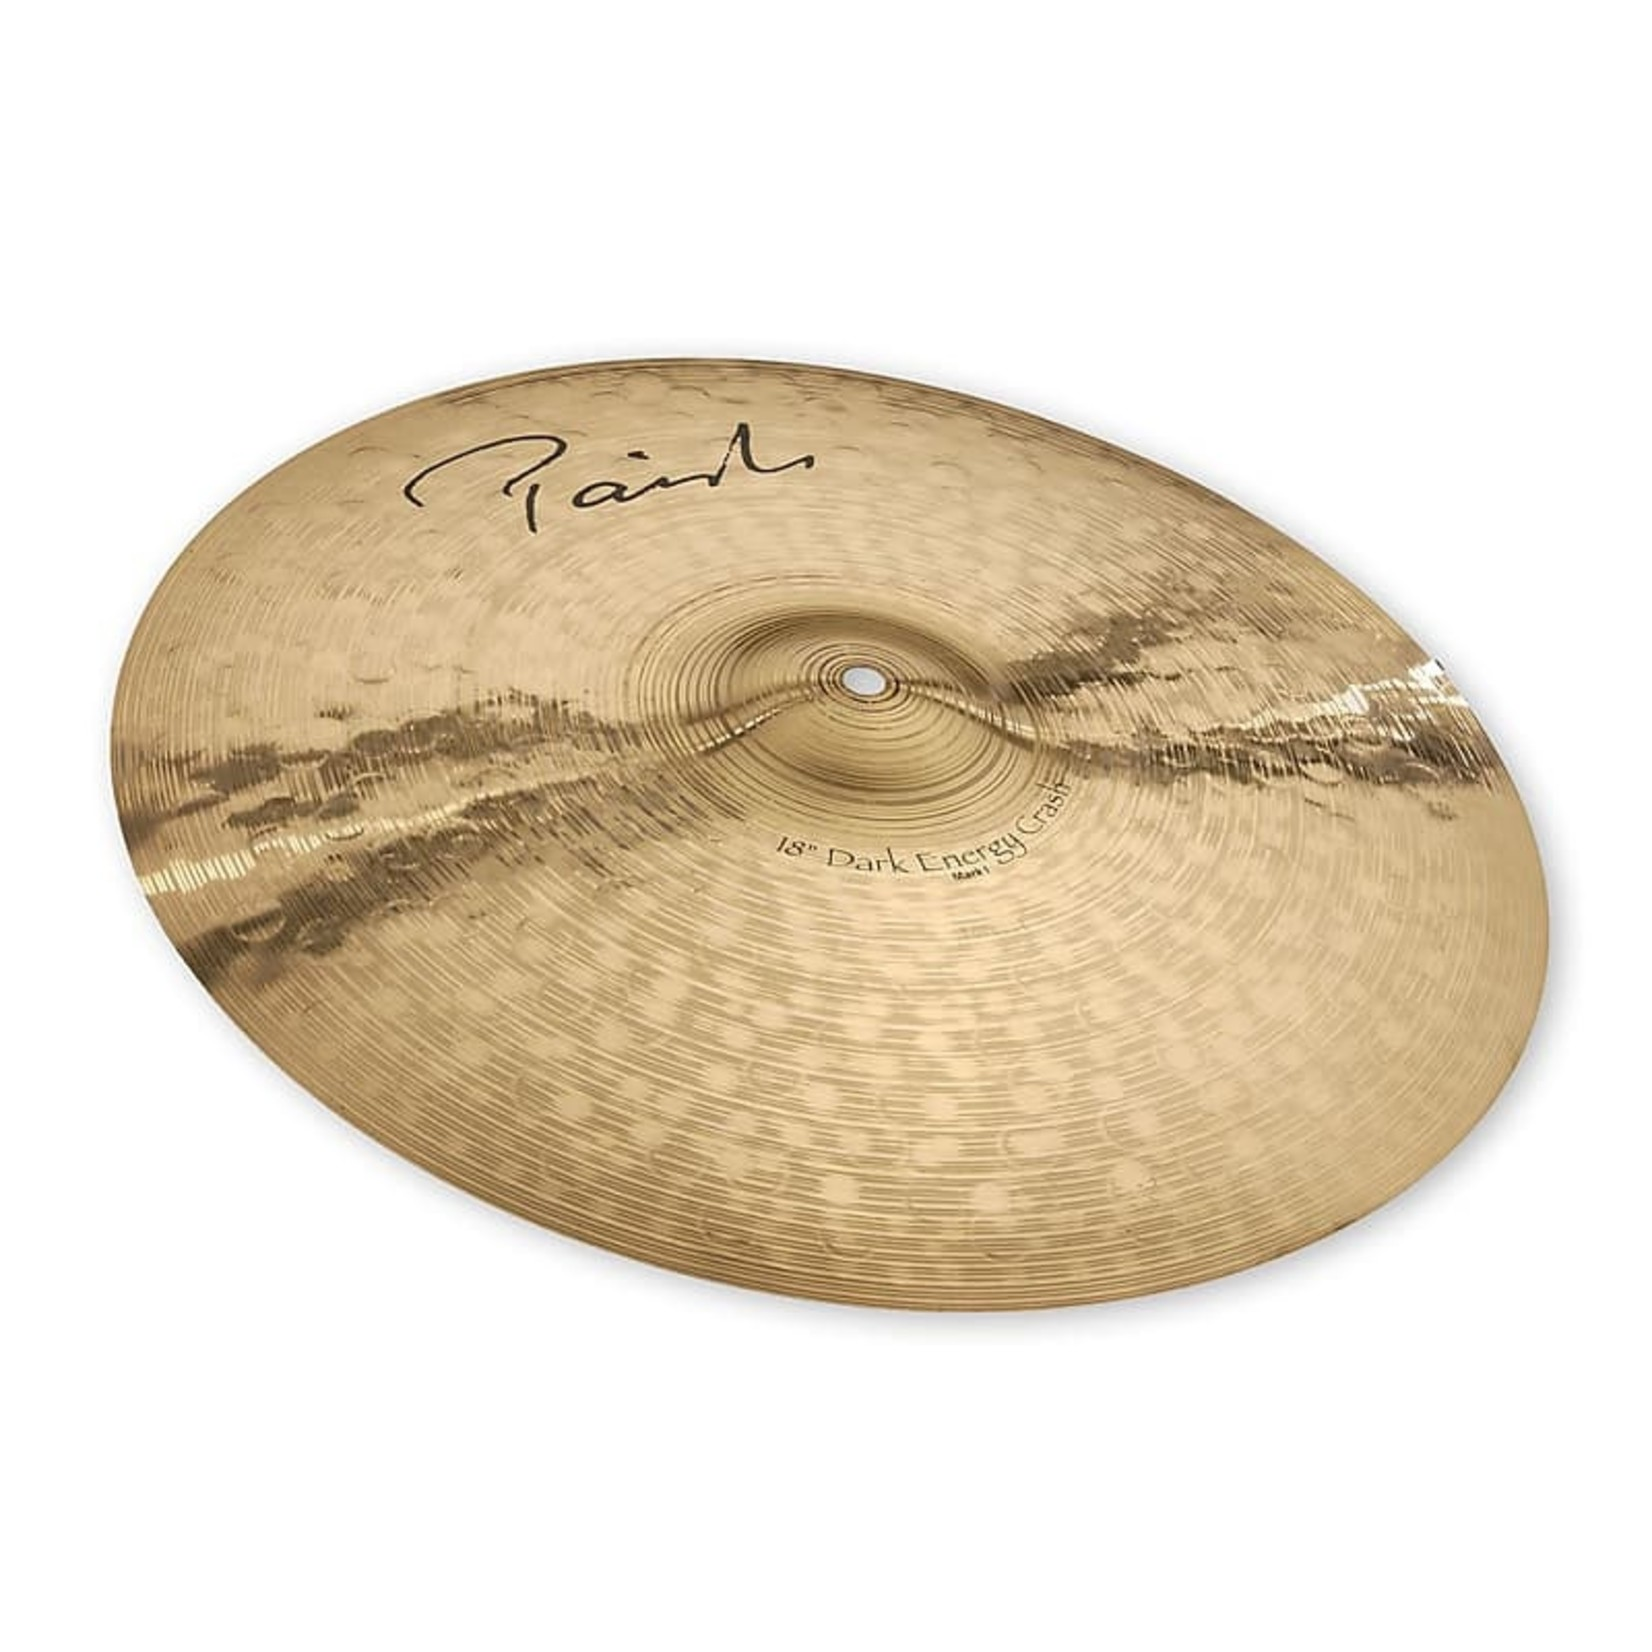 "Paiste PAISTE 18"" SIGNATURE DARK ENERGY CRASH MK I"